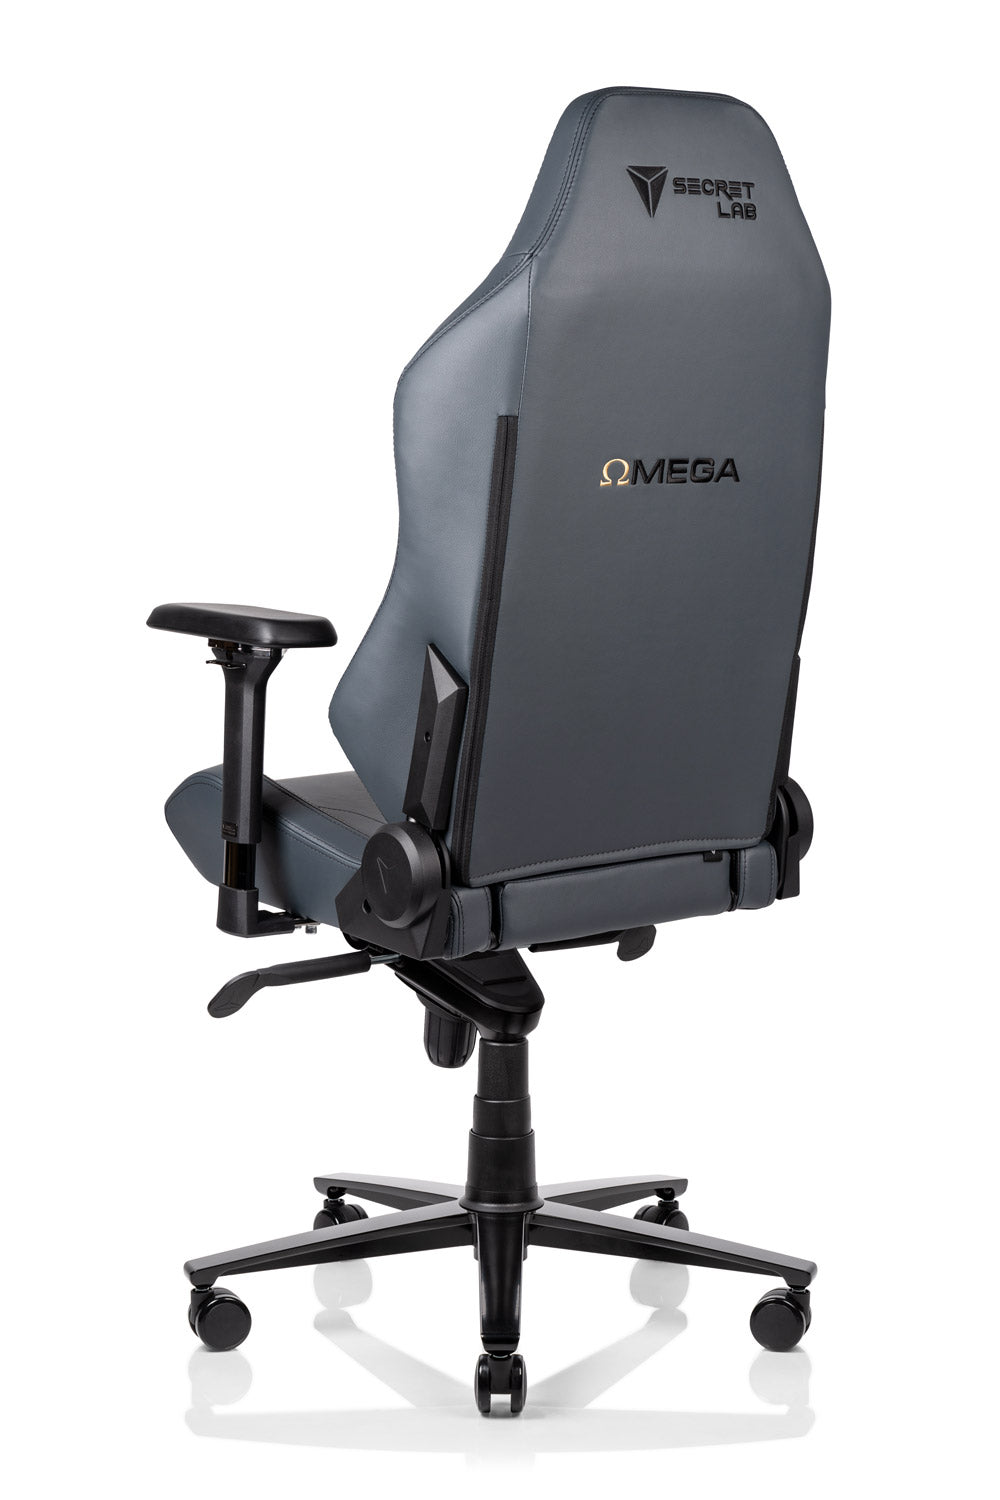 Best Office Desk Chairs 2020 OMEGA Series gaming chairs | Secretlab US